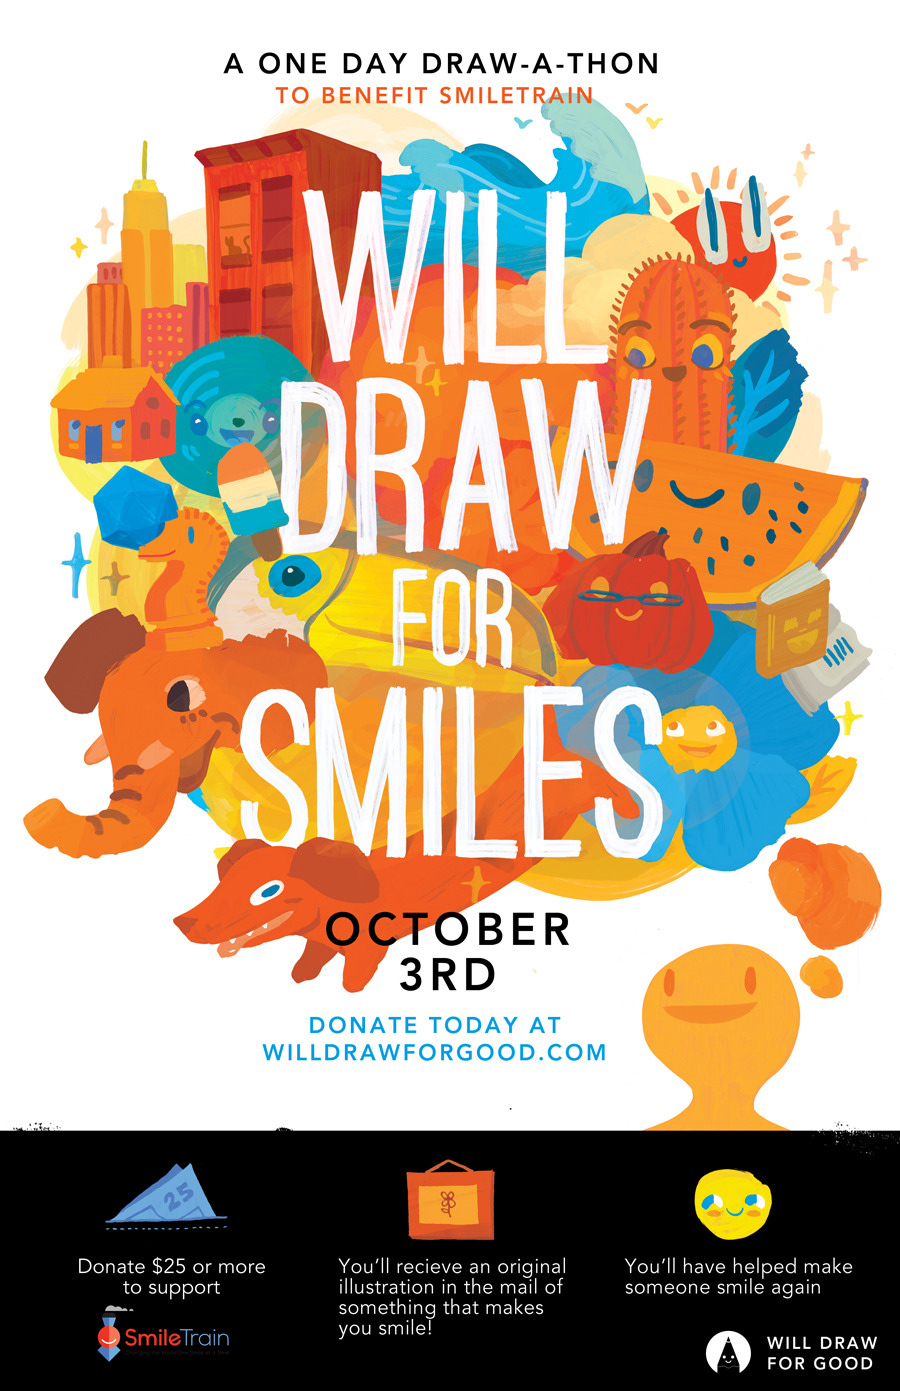 For a couple of hours in the early afternoon of Friday October 3rd, I will be drawing stuff for a good cause at  Orange You Glad's  studio.  Donate $25 or more  and you will get artwork sent you you in the mail.    Go to  Will Draw for Good's  website to learn more about the event. All money is being donated to  Smile Train  which helps children born with a cleft lip.